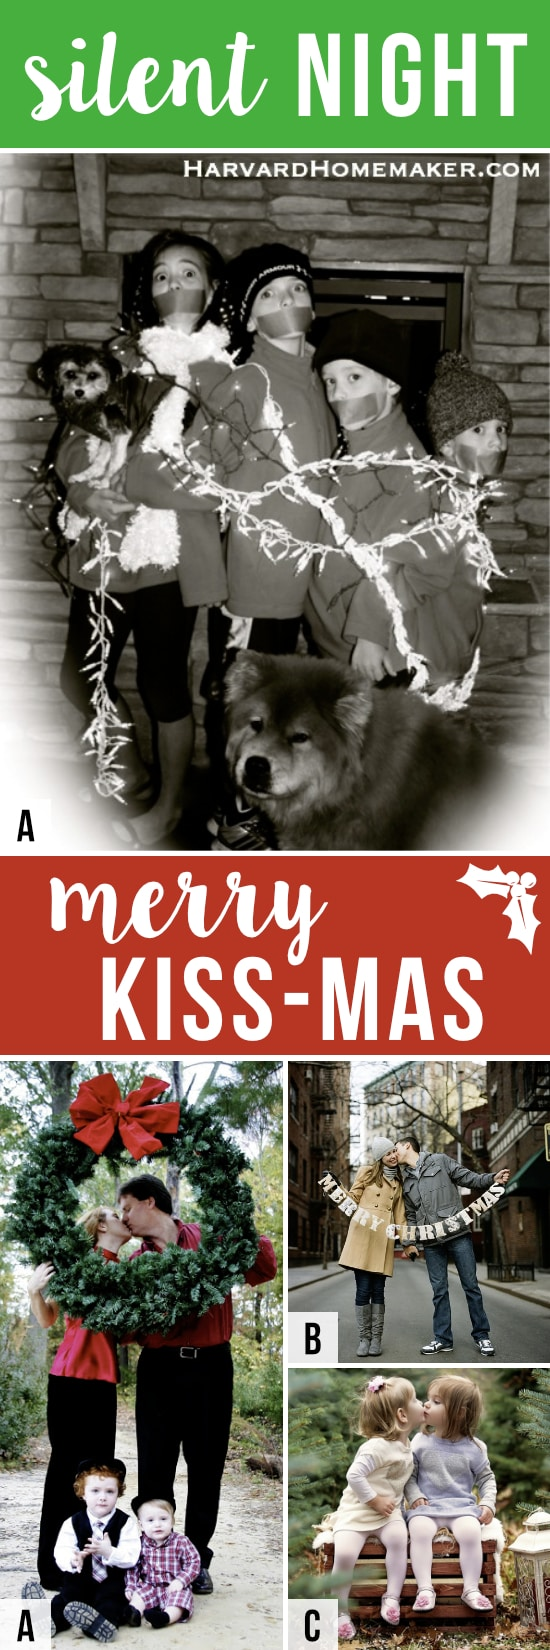 101 Creative Christmas Card Ideas - The Dating Divas